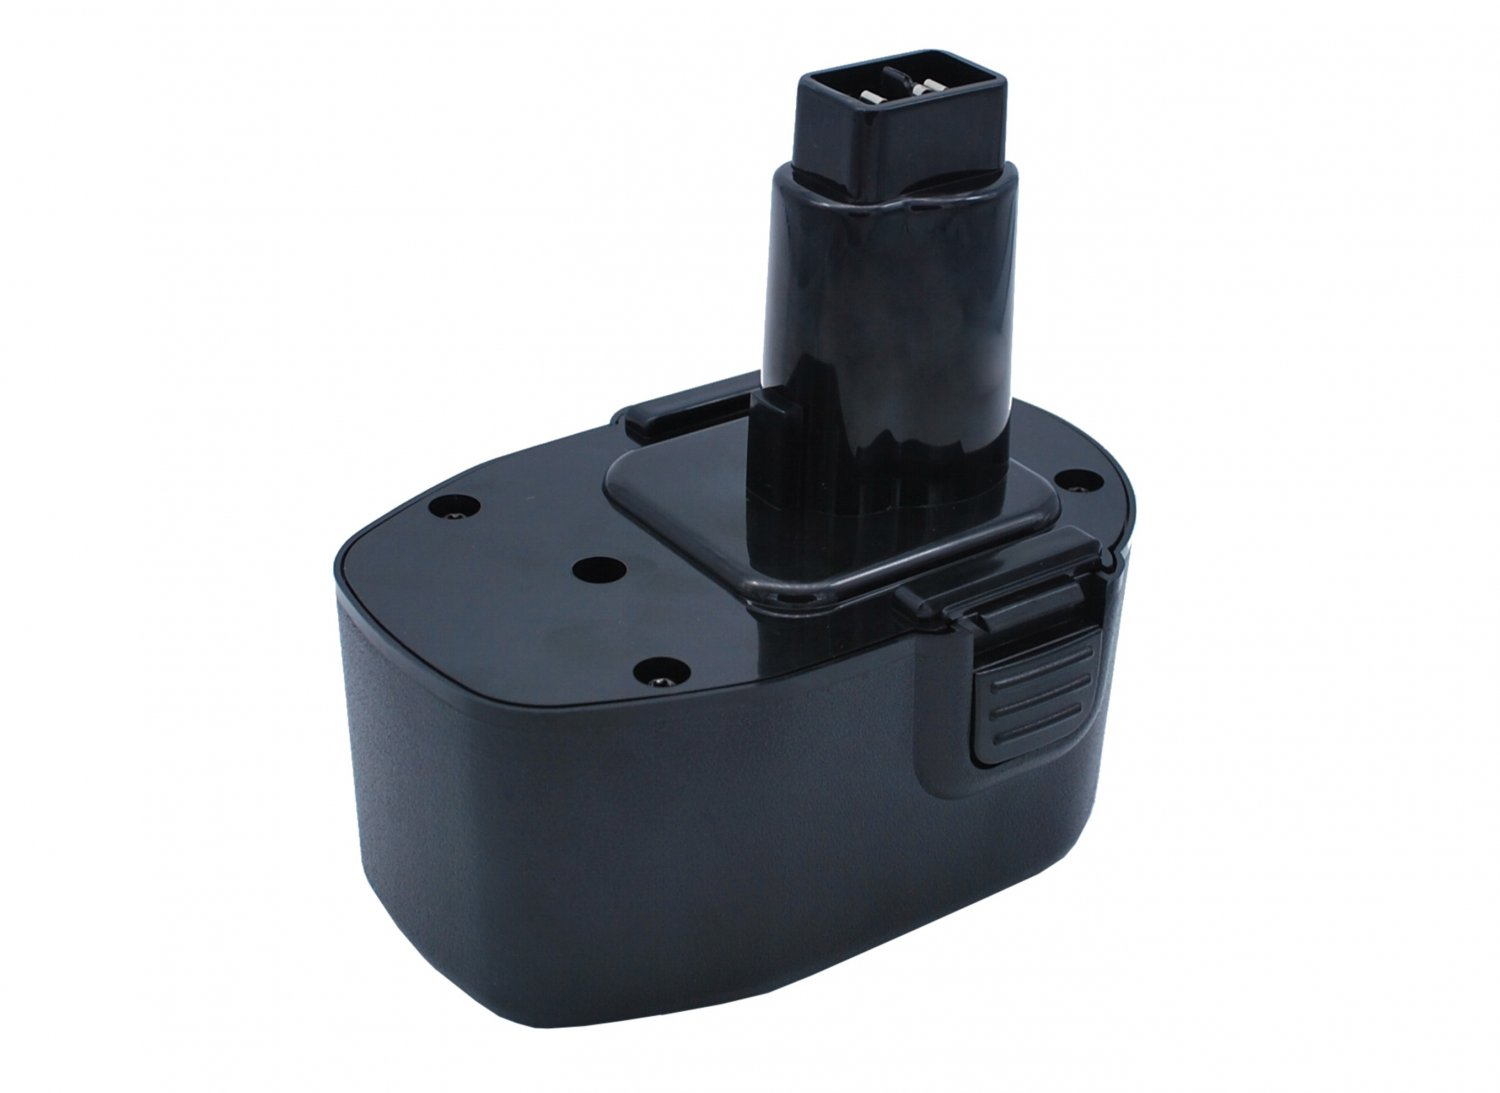 BATTERY BLACK & DECKER A9262, A9276, B8236, BPT1058, EZWA77, EZWA80, PS140, PS140A FOR PS3650K